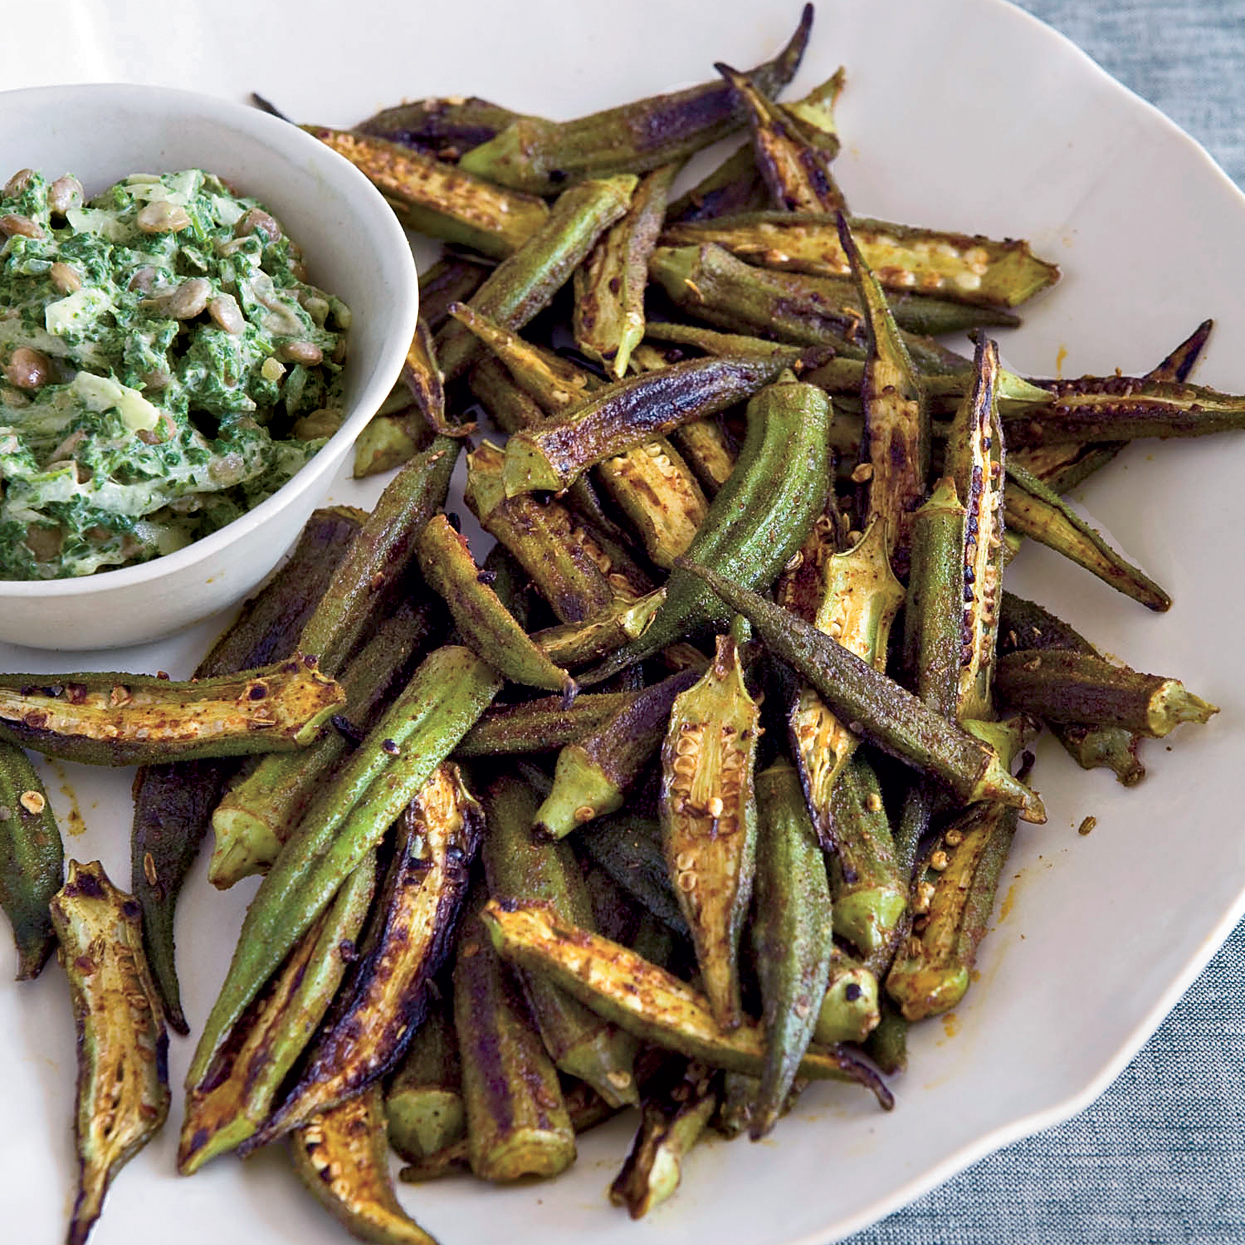 A Carnivore's Best Vegetarian Dishes